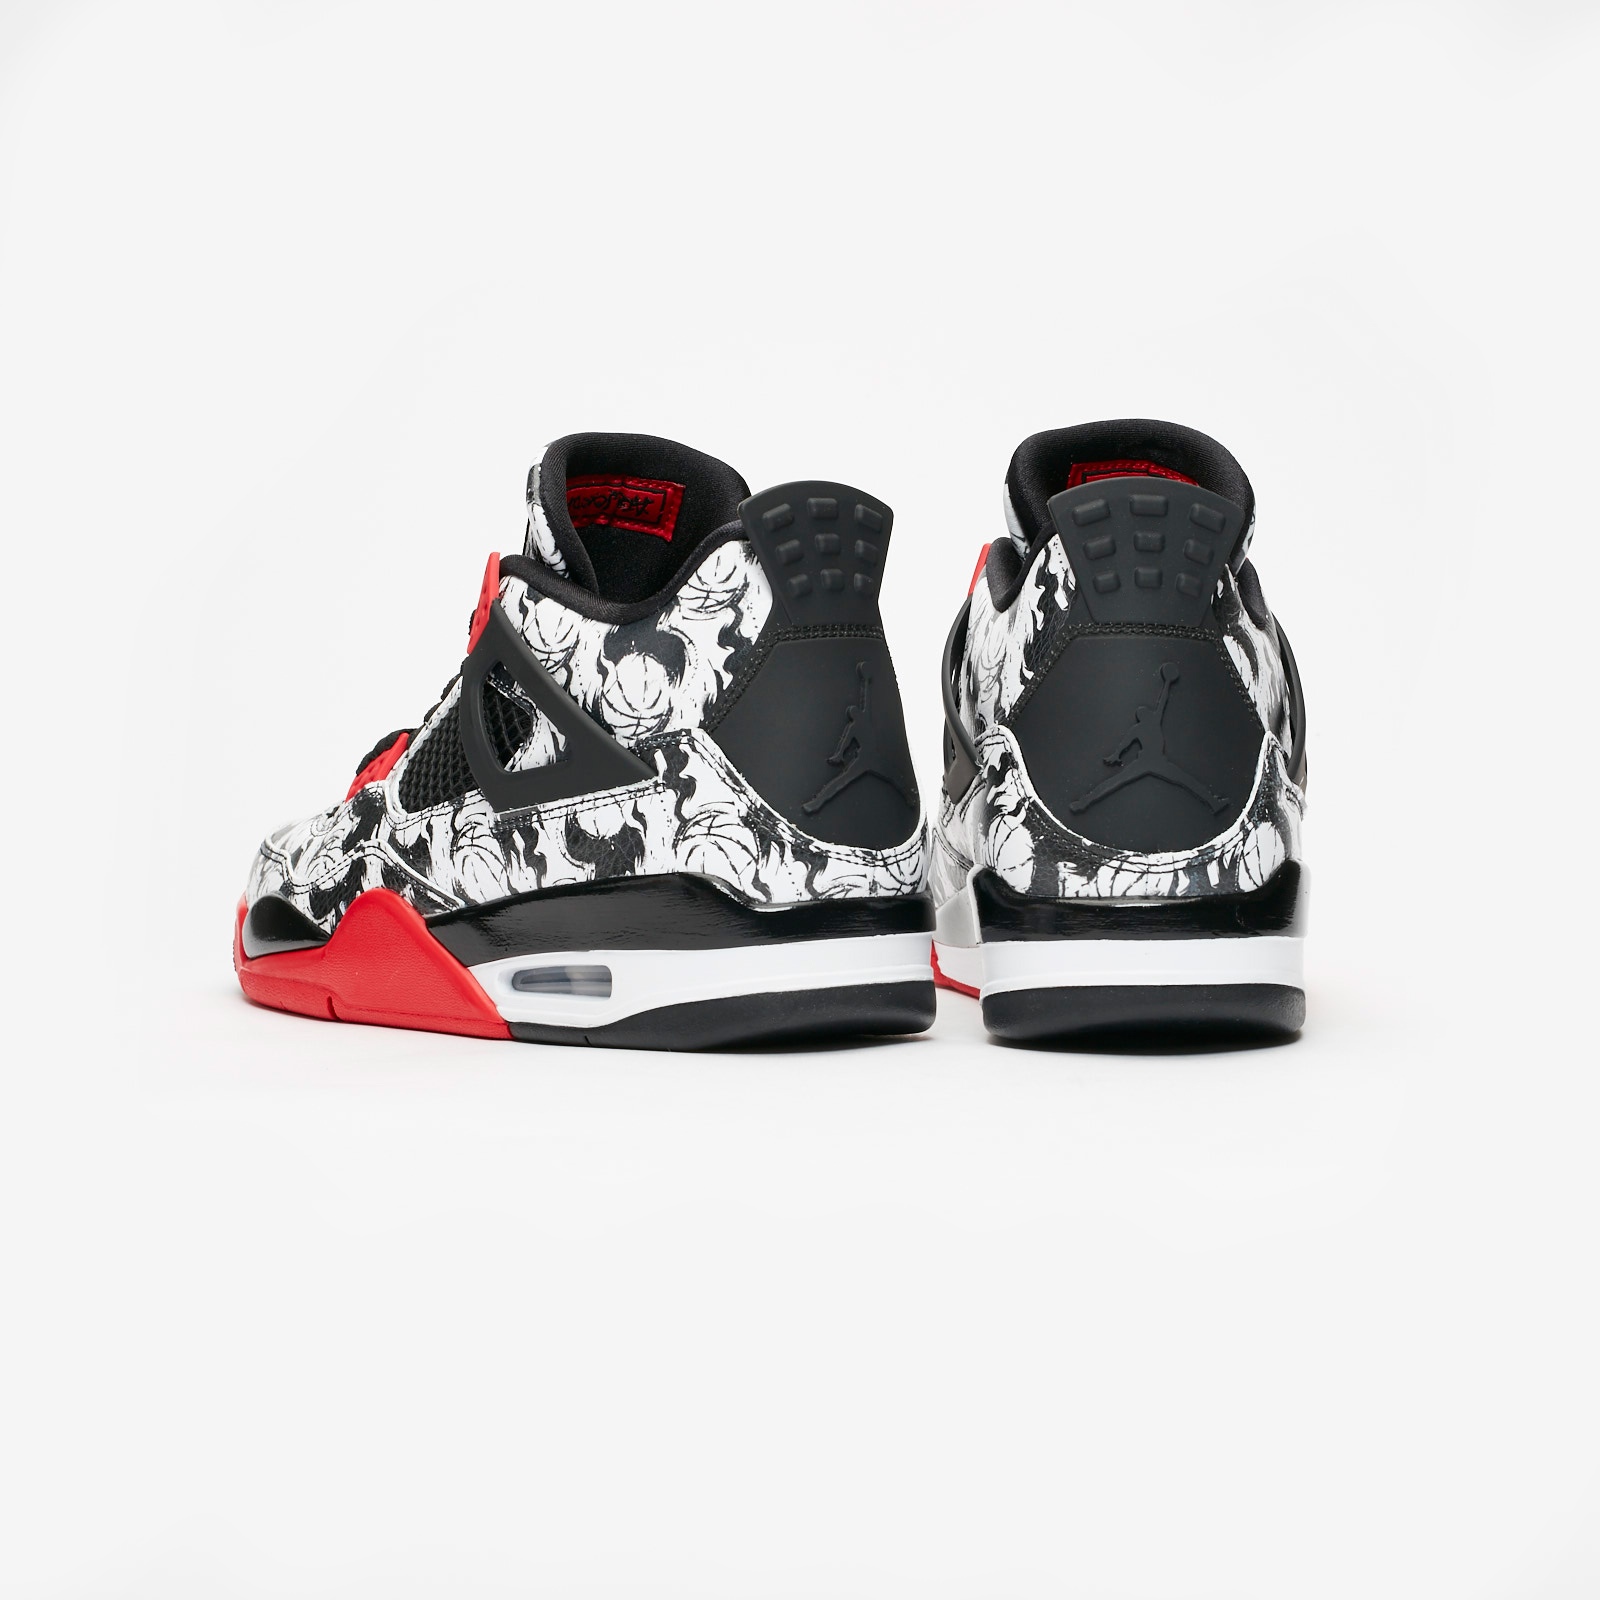 differently 2a8b0 b08ae Jordan Brand Air Jordan 4 Tattoo - Bq0897-006 - Sneakersnstuff   sneakers    streetwear online since 1999